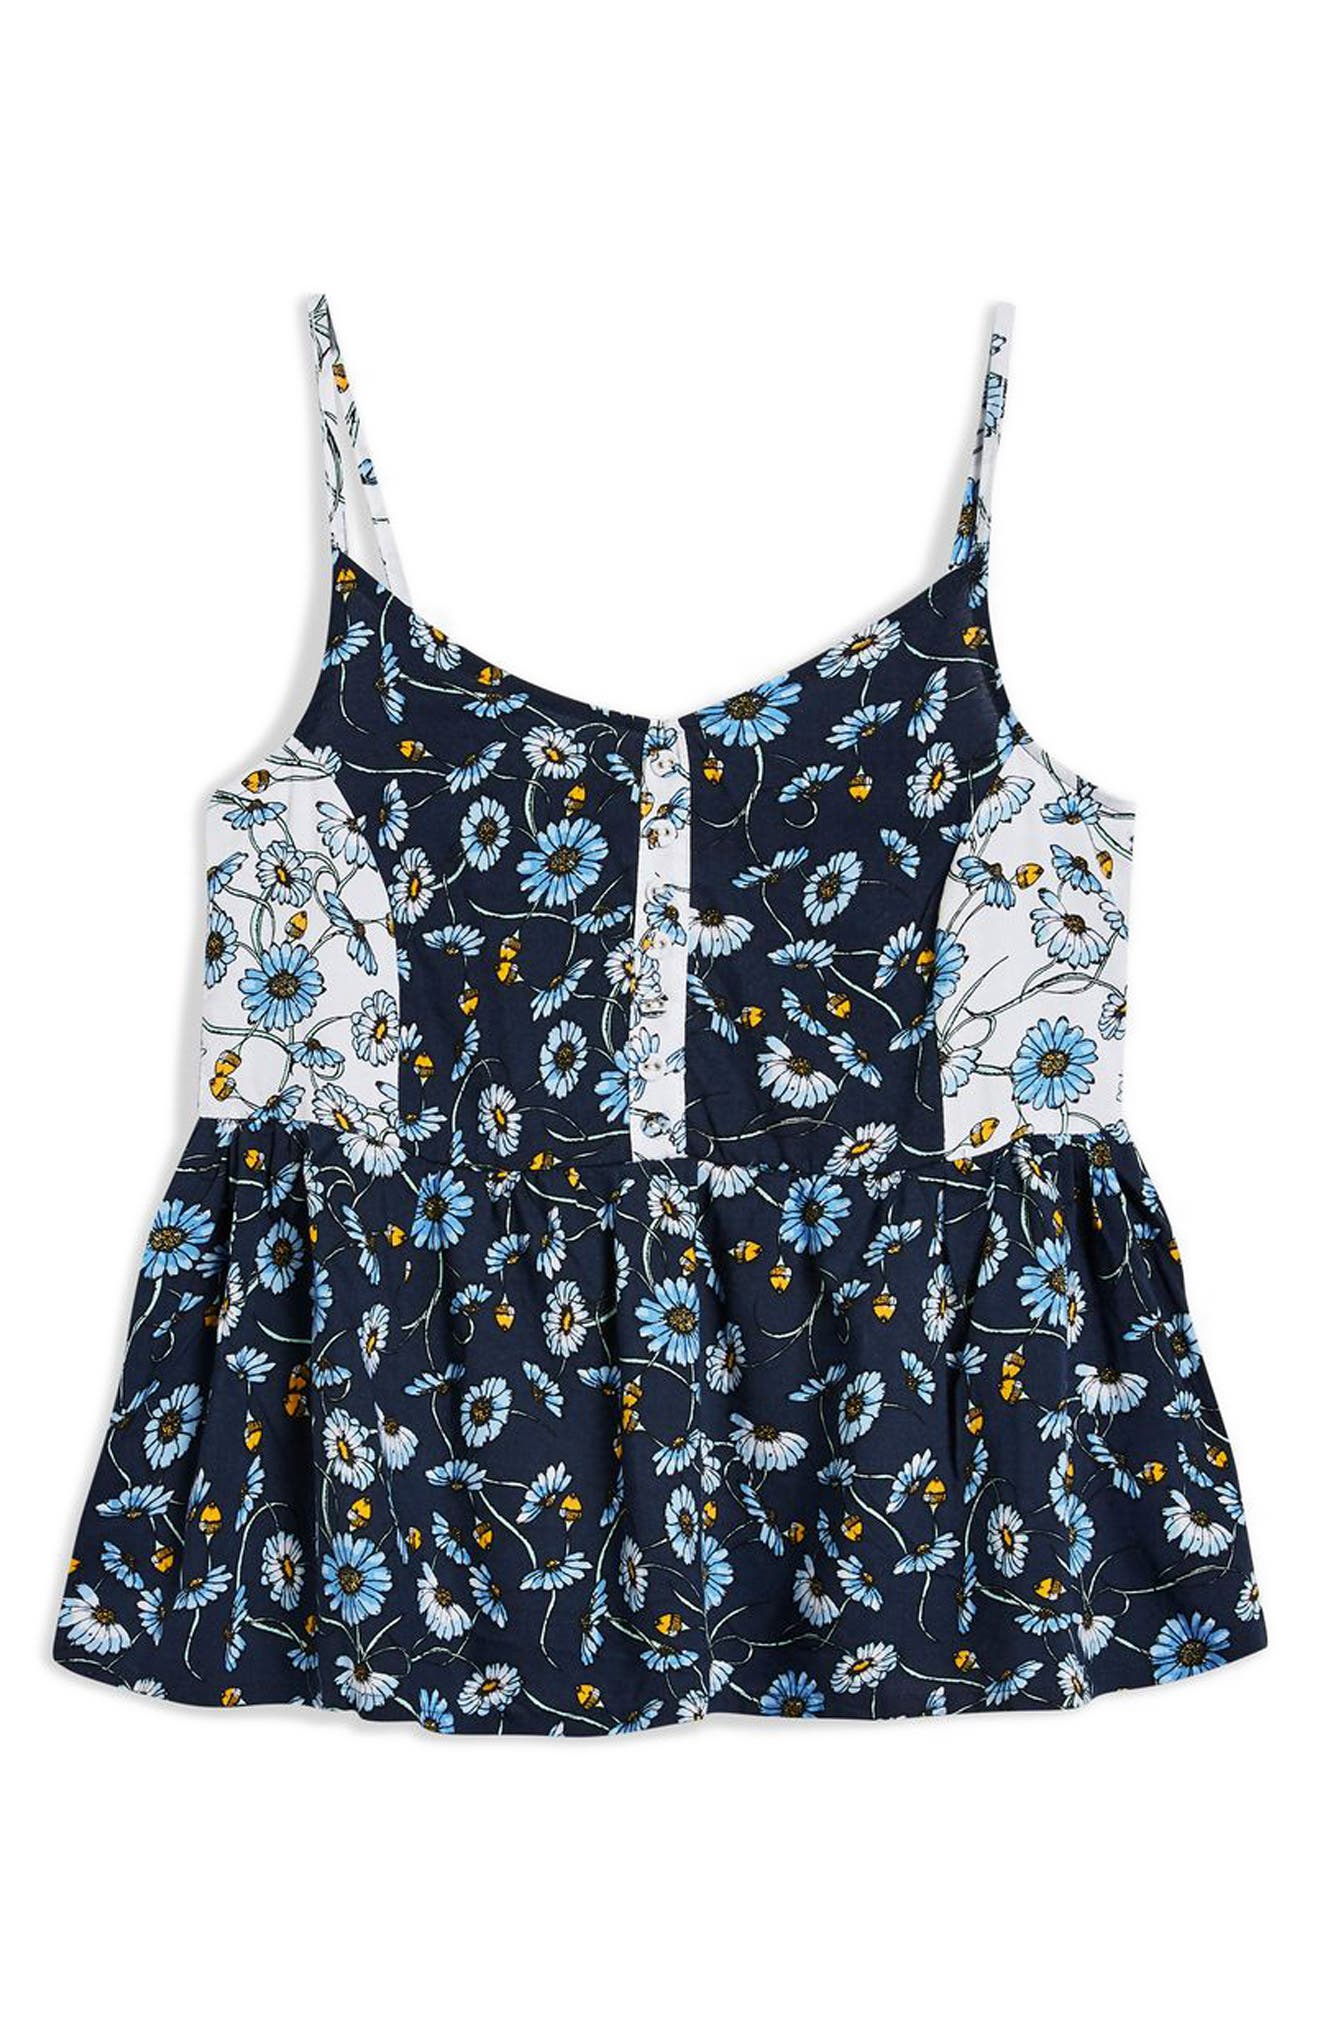 TOPSHOP,                             Floral Cami Sleep Top,                             Alternate thumbnail 5, color,                             411